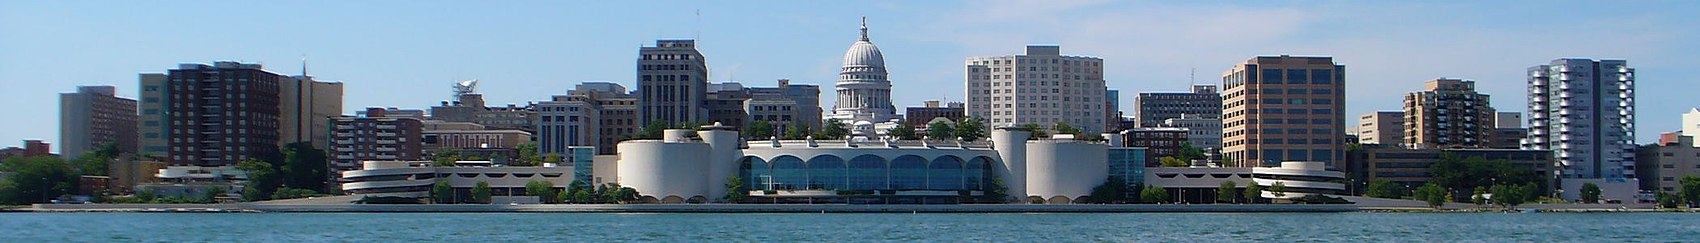 Panorama du centre de Madison.